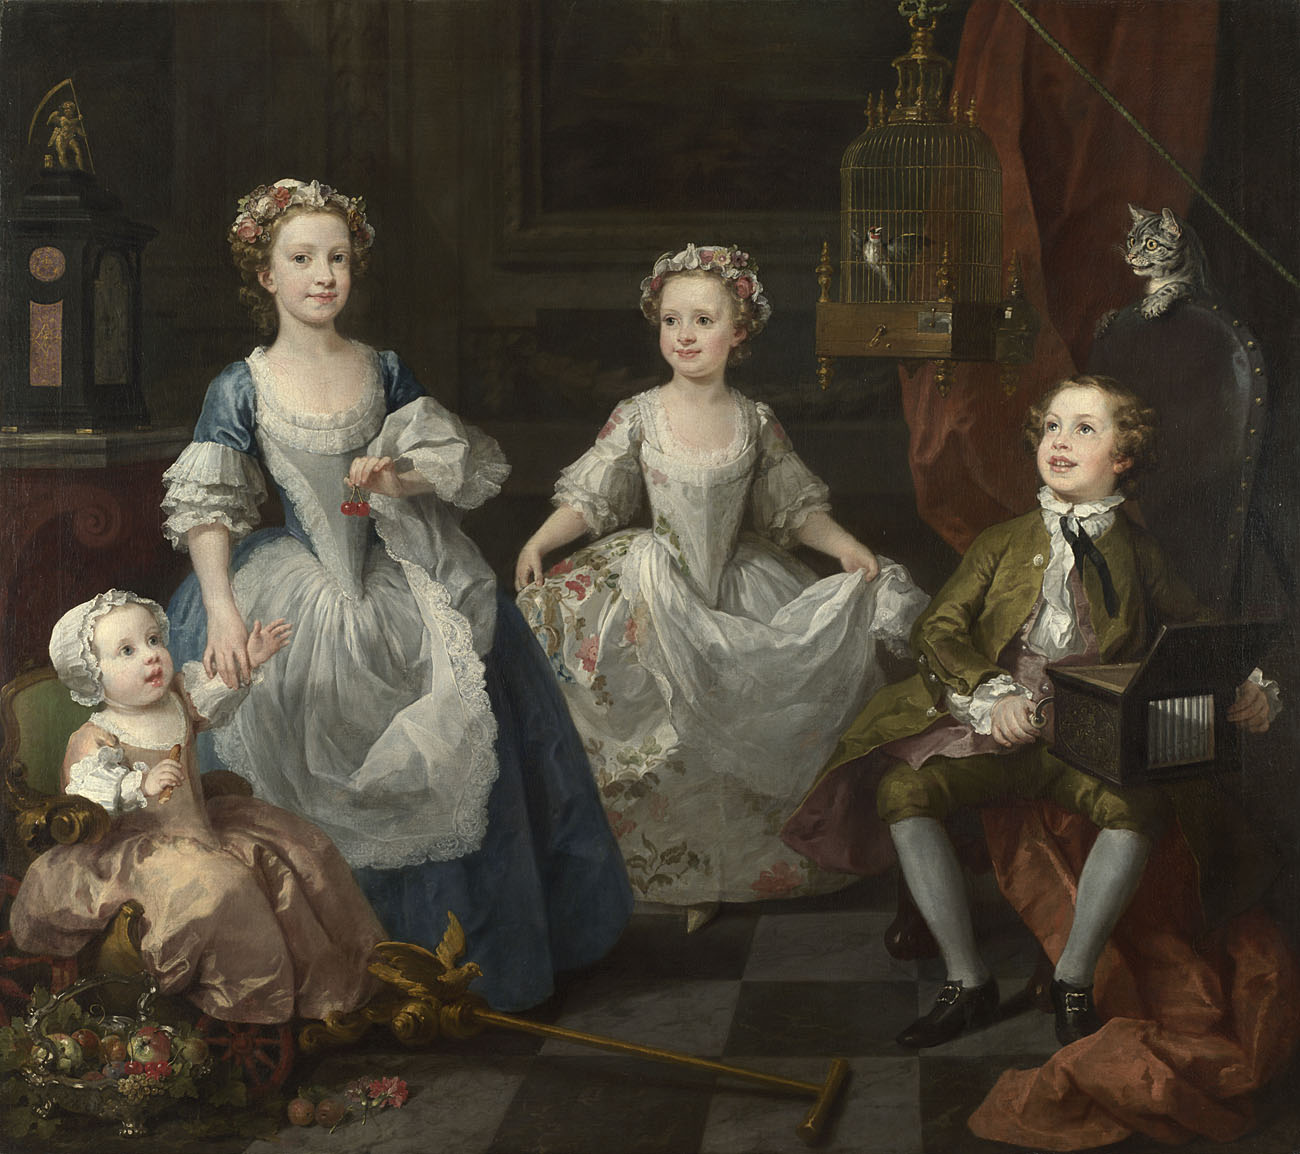 William Hogarth,  The Graham Children , 1742. Presented by Lord Duveen through the Art Fund, 1934 © The National Gallery, London